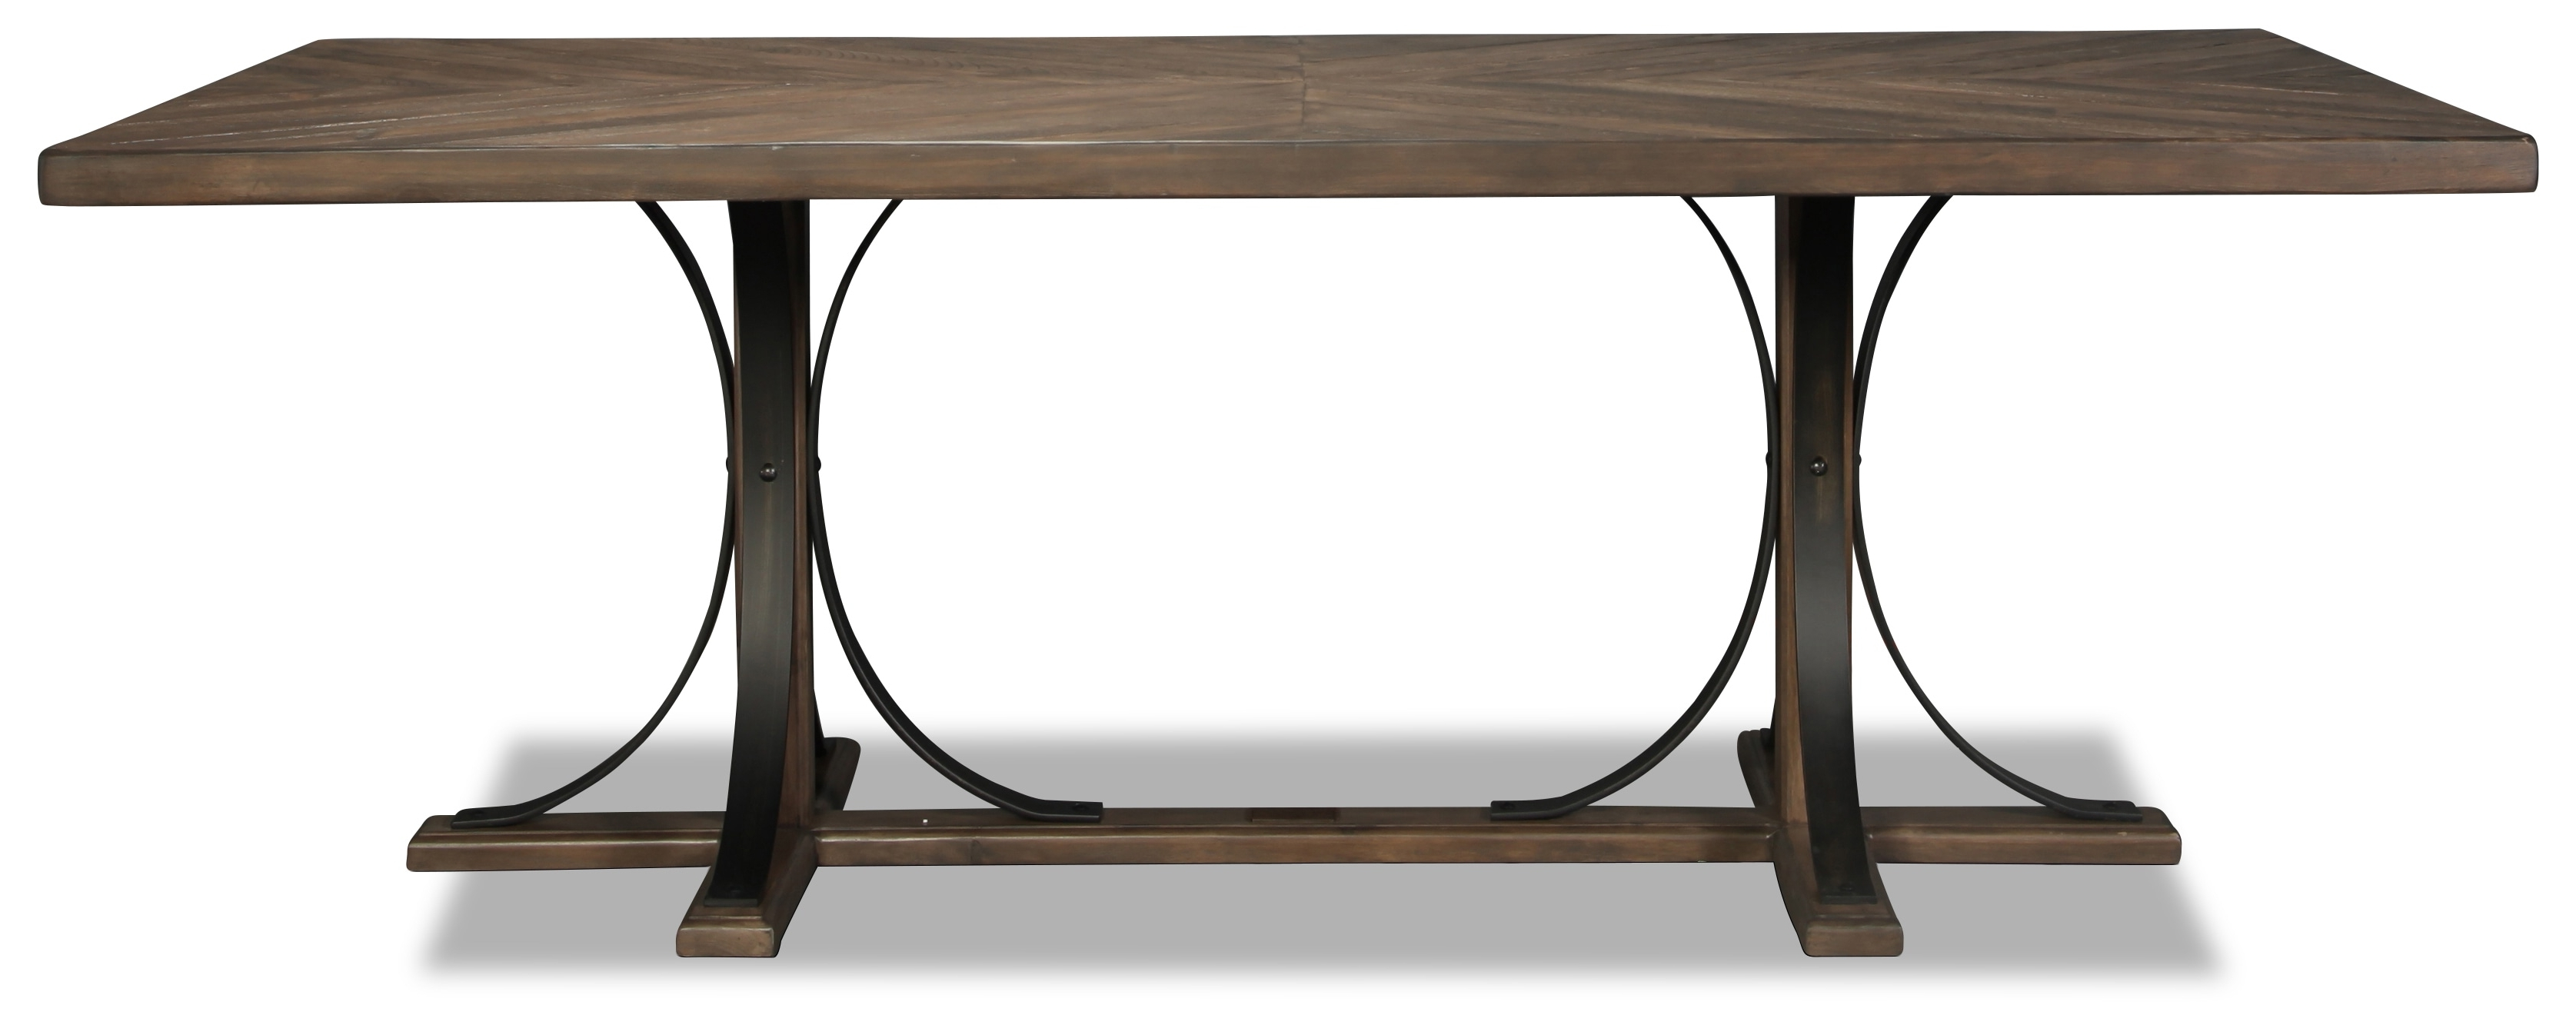 Magnolia Home Traditional Iron Trestle Table (View 14 of 20)